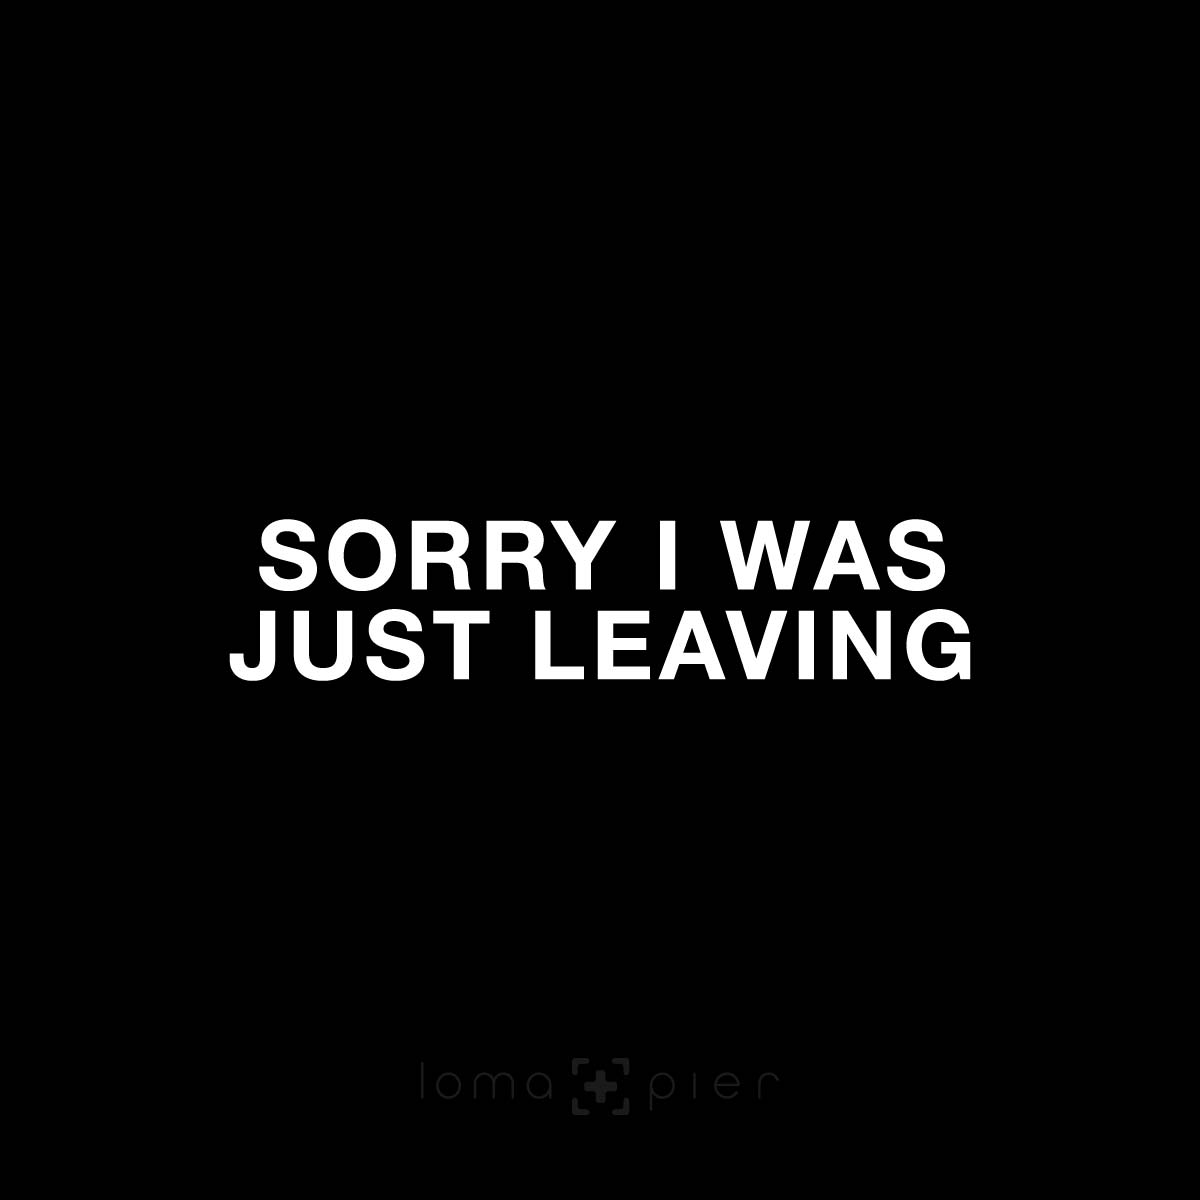 SORRY I WAS JUST LEAVING hat design by loma+pier